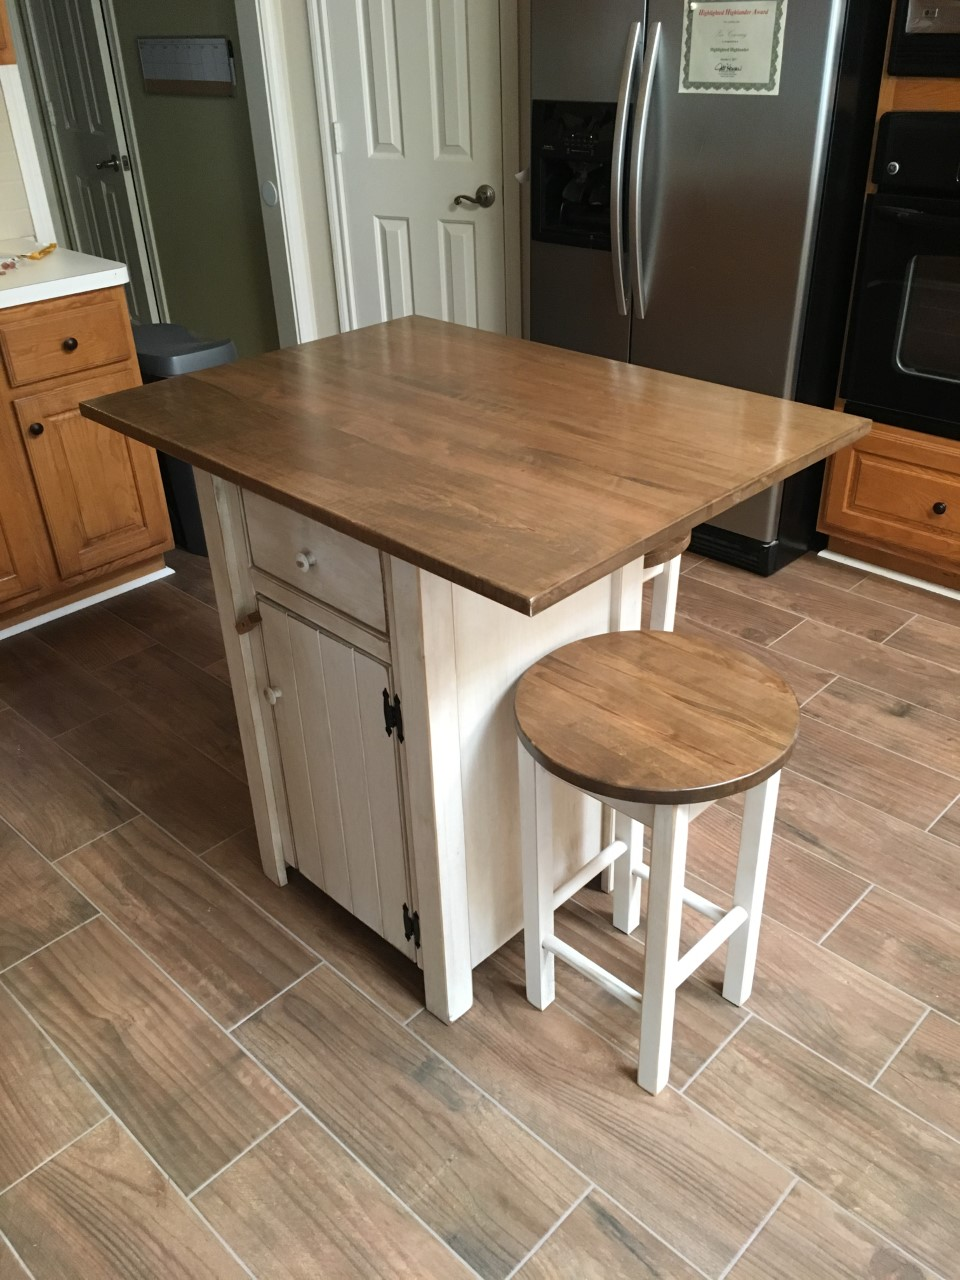 Brilliant Small Primitive Kitchen Island In Counter Height With 2 Stools Interior Design Ideas Pimpapslepicentreinfo